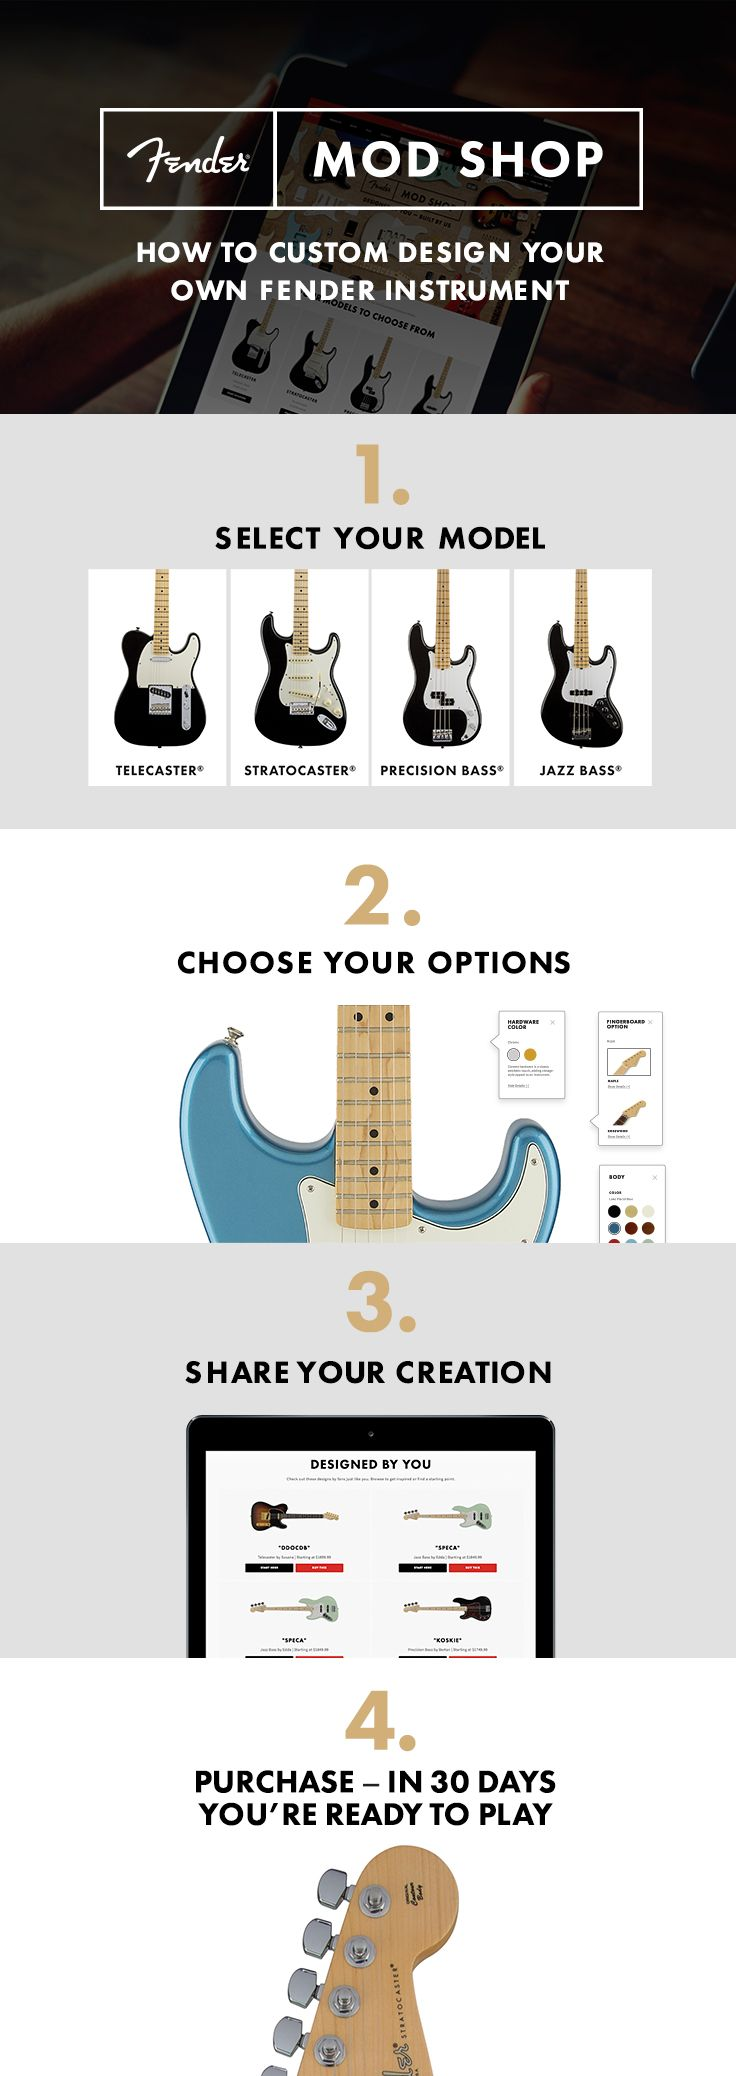 how to custom design your own fender instrument just follow these easy steps new from. Black Bedroom Furniture Sets. Home Design Ideas